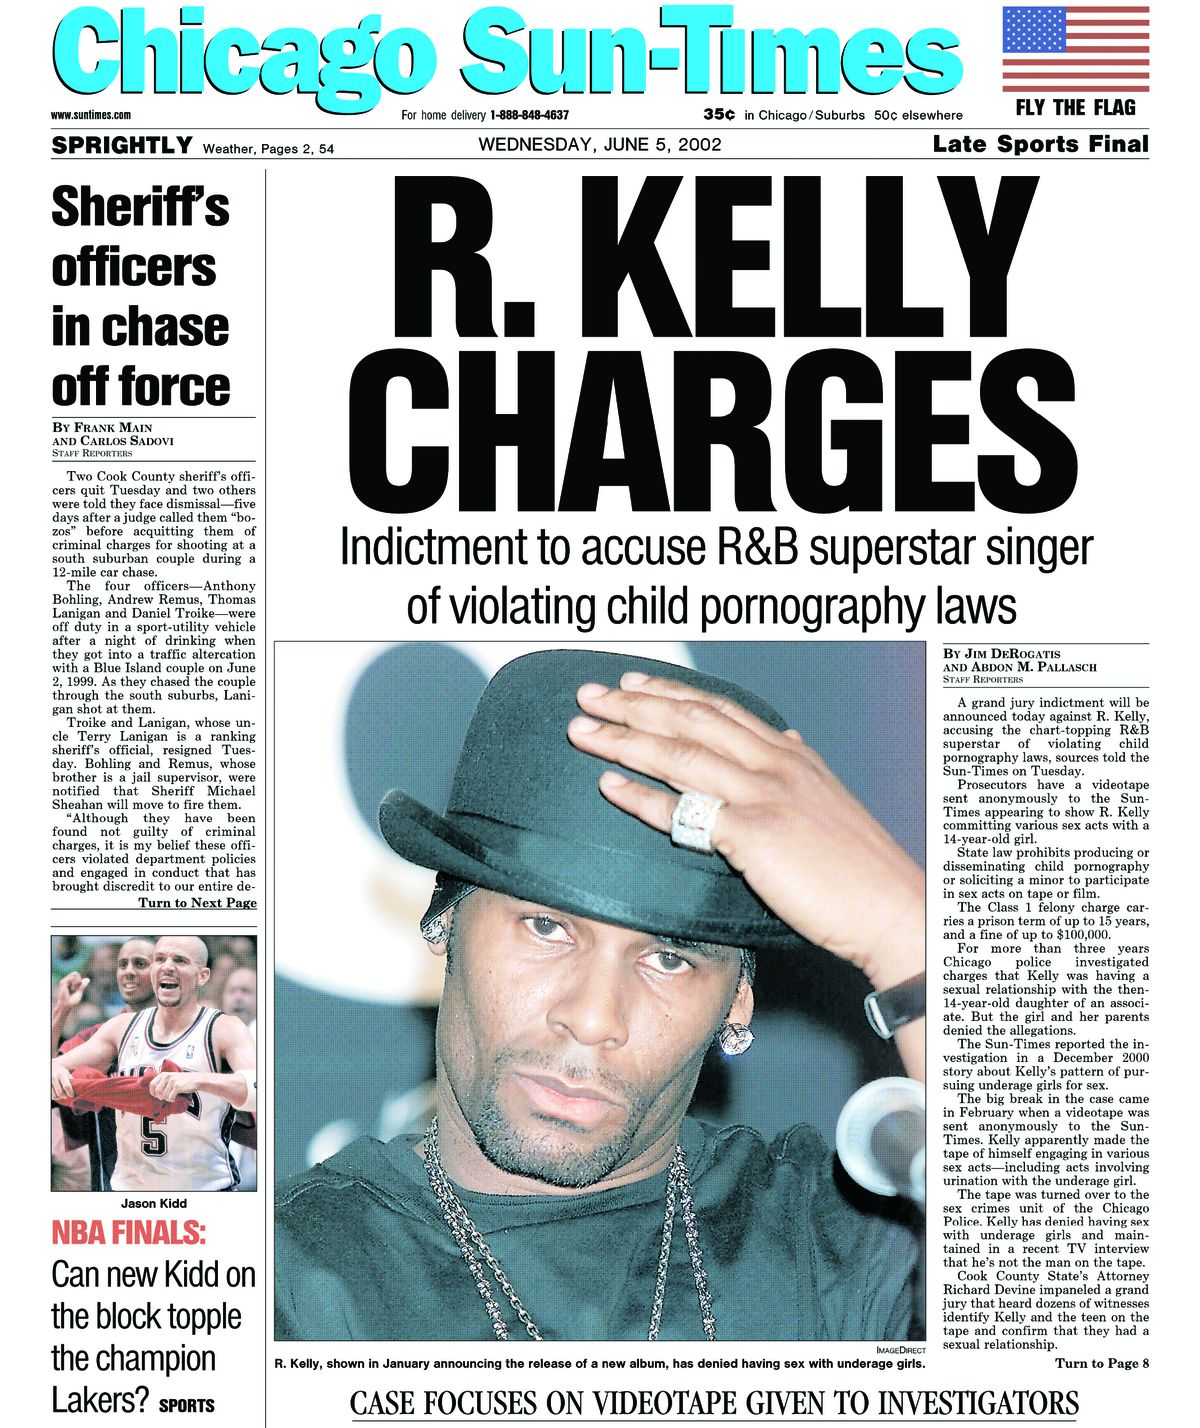 Front page of the Chicago Sun-Times on June 5, 2002.